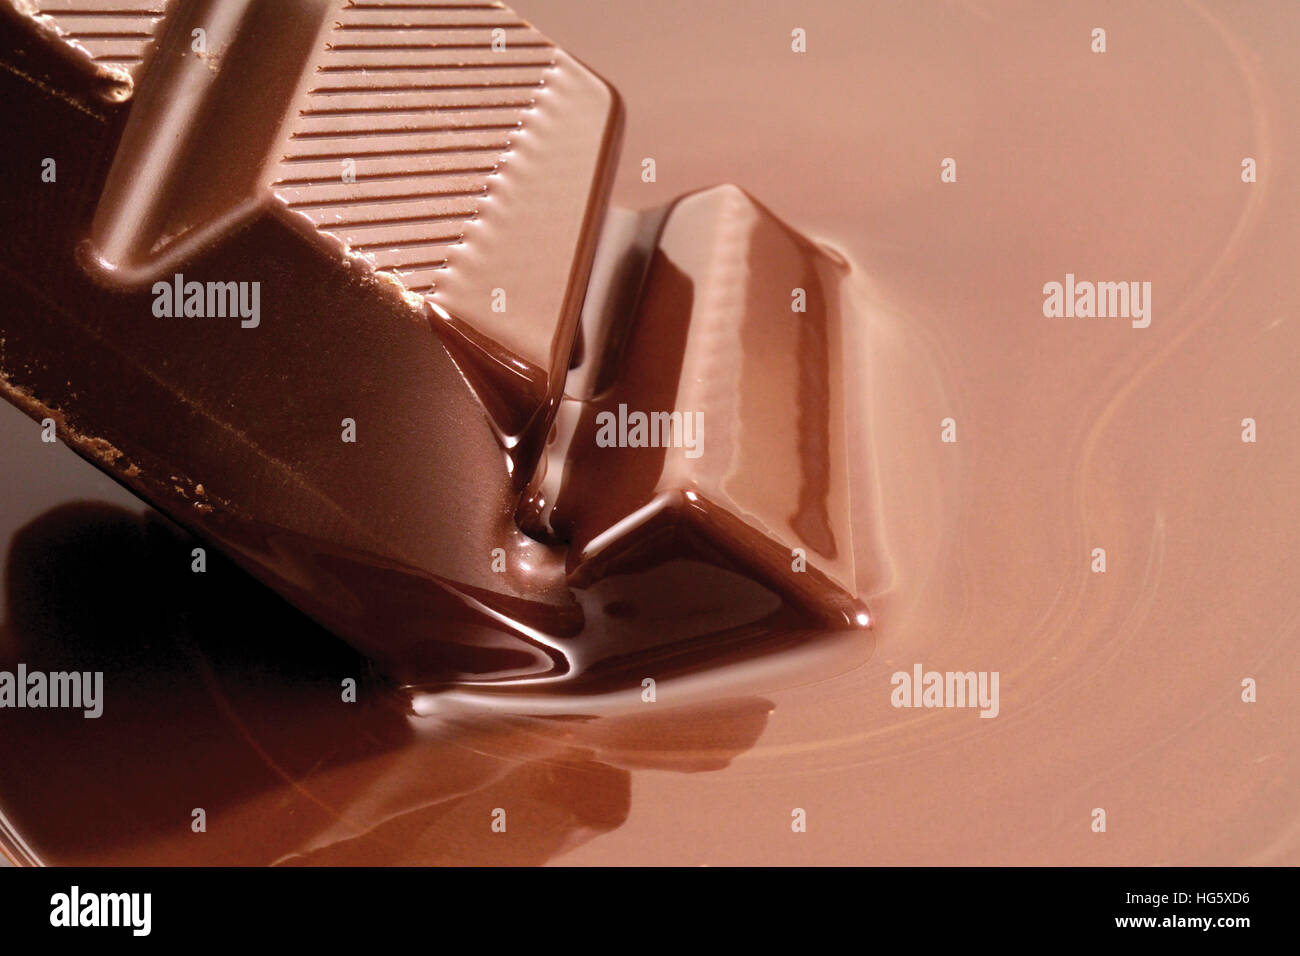 Chocolate bar dunked into melted couverture chocolate Stock Photo ...